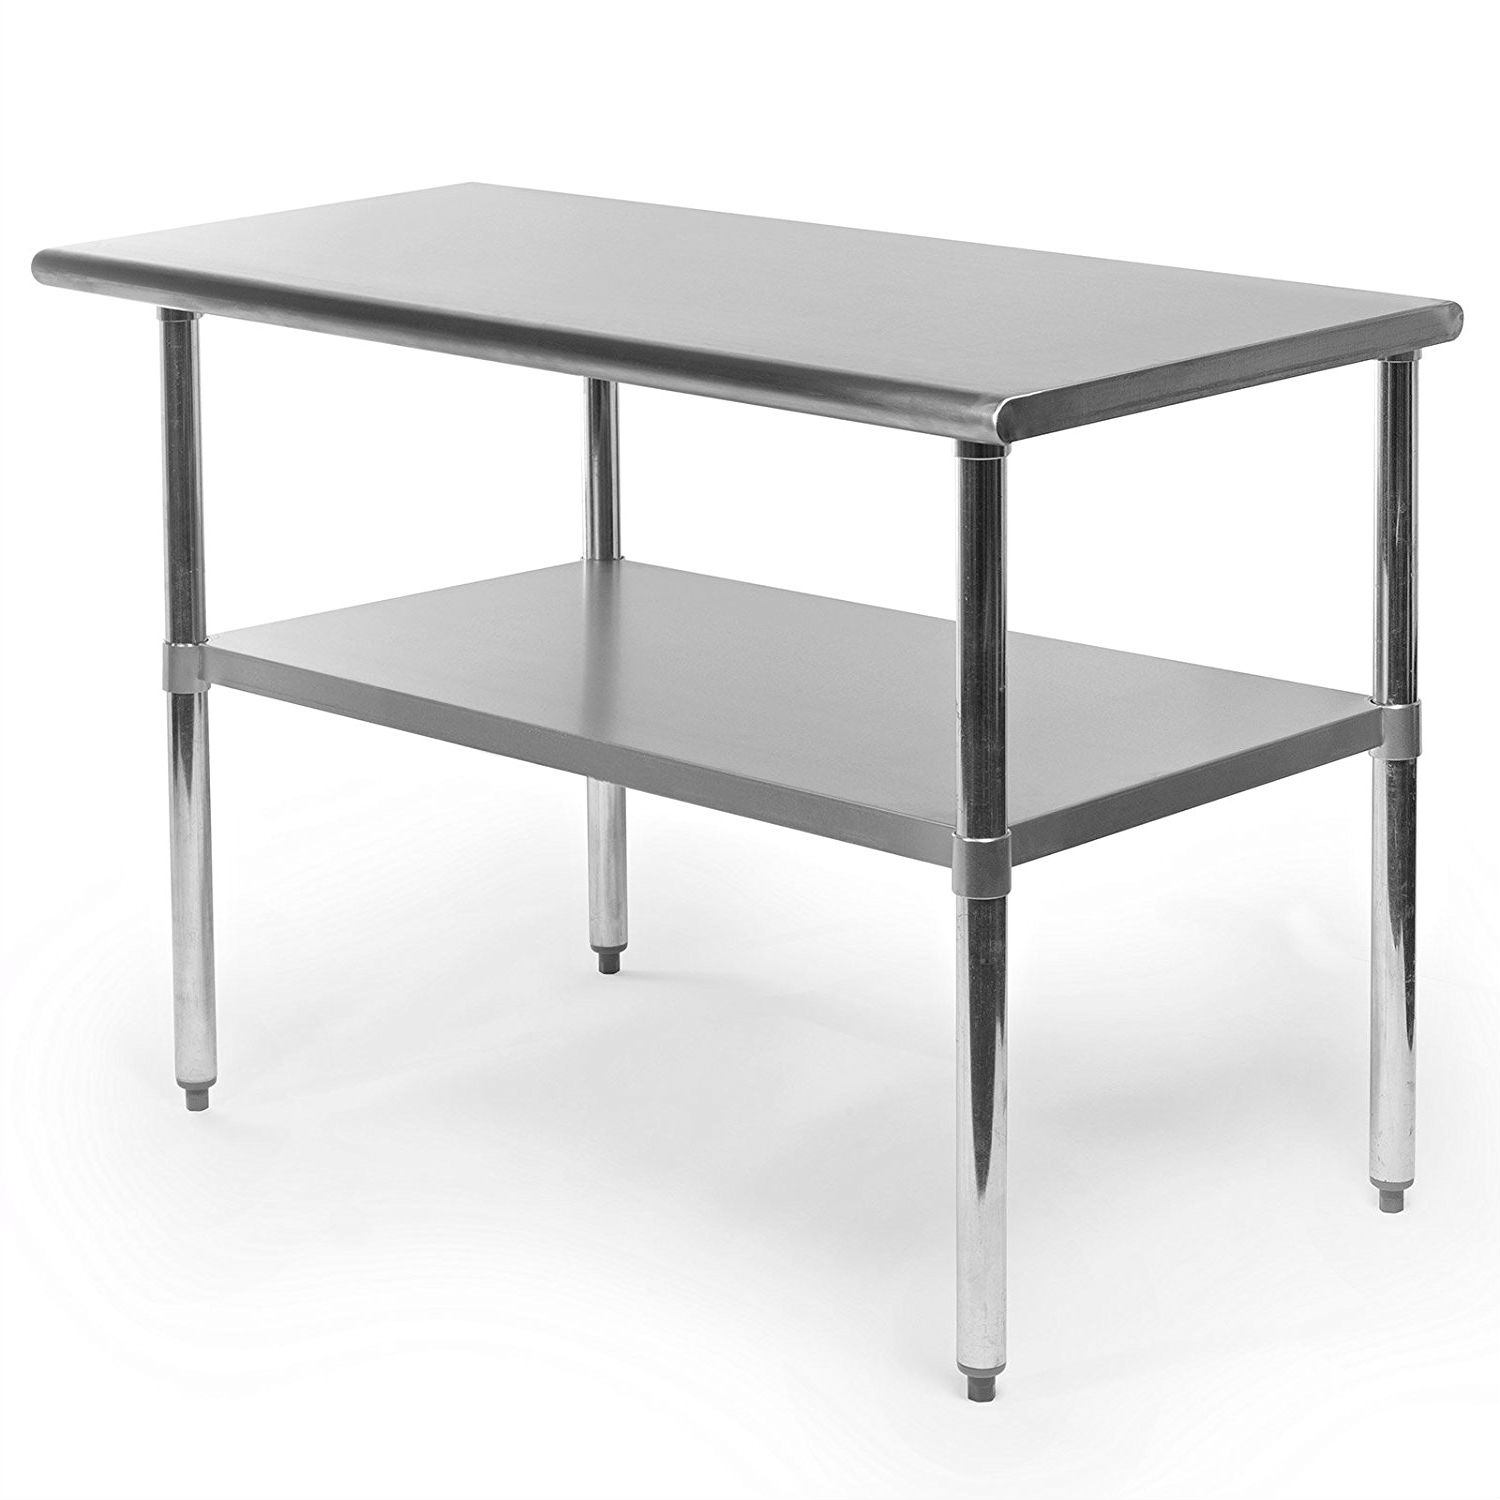 Stainless Steel 48 x 24 inch Heavy Duty Kitchen Work Table ...